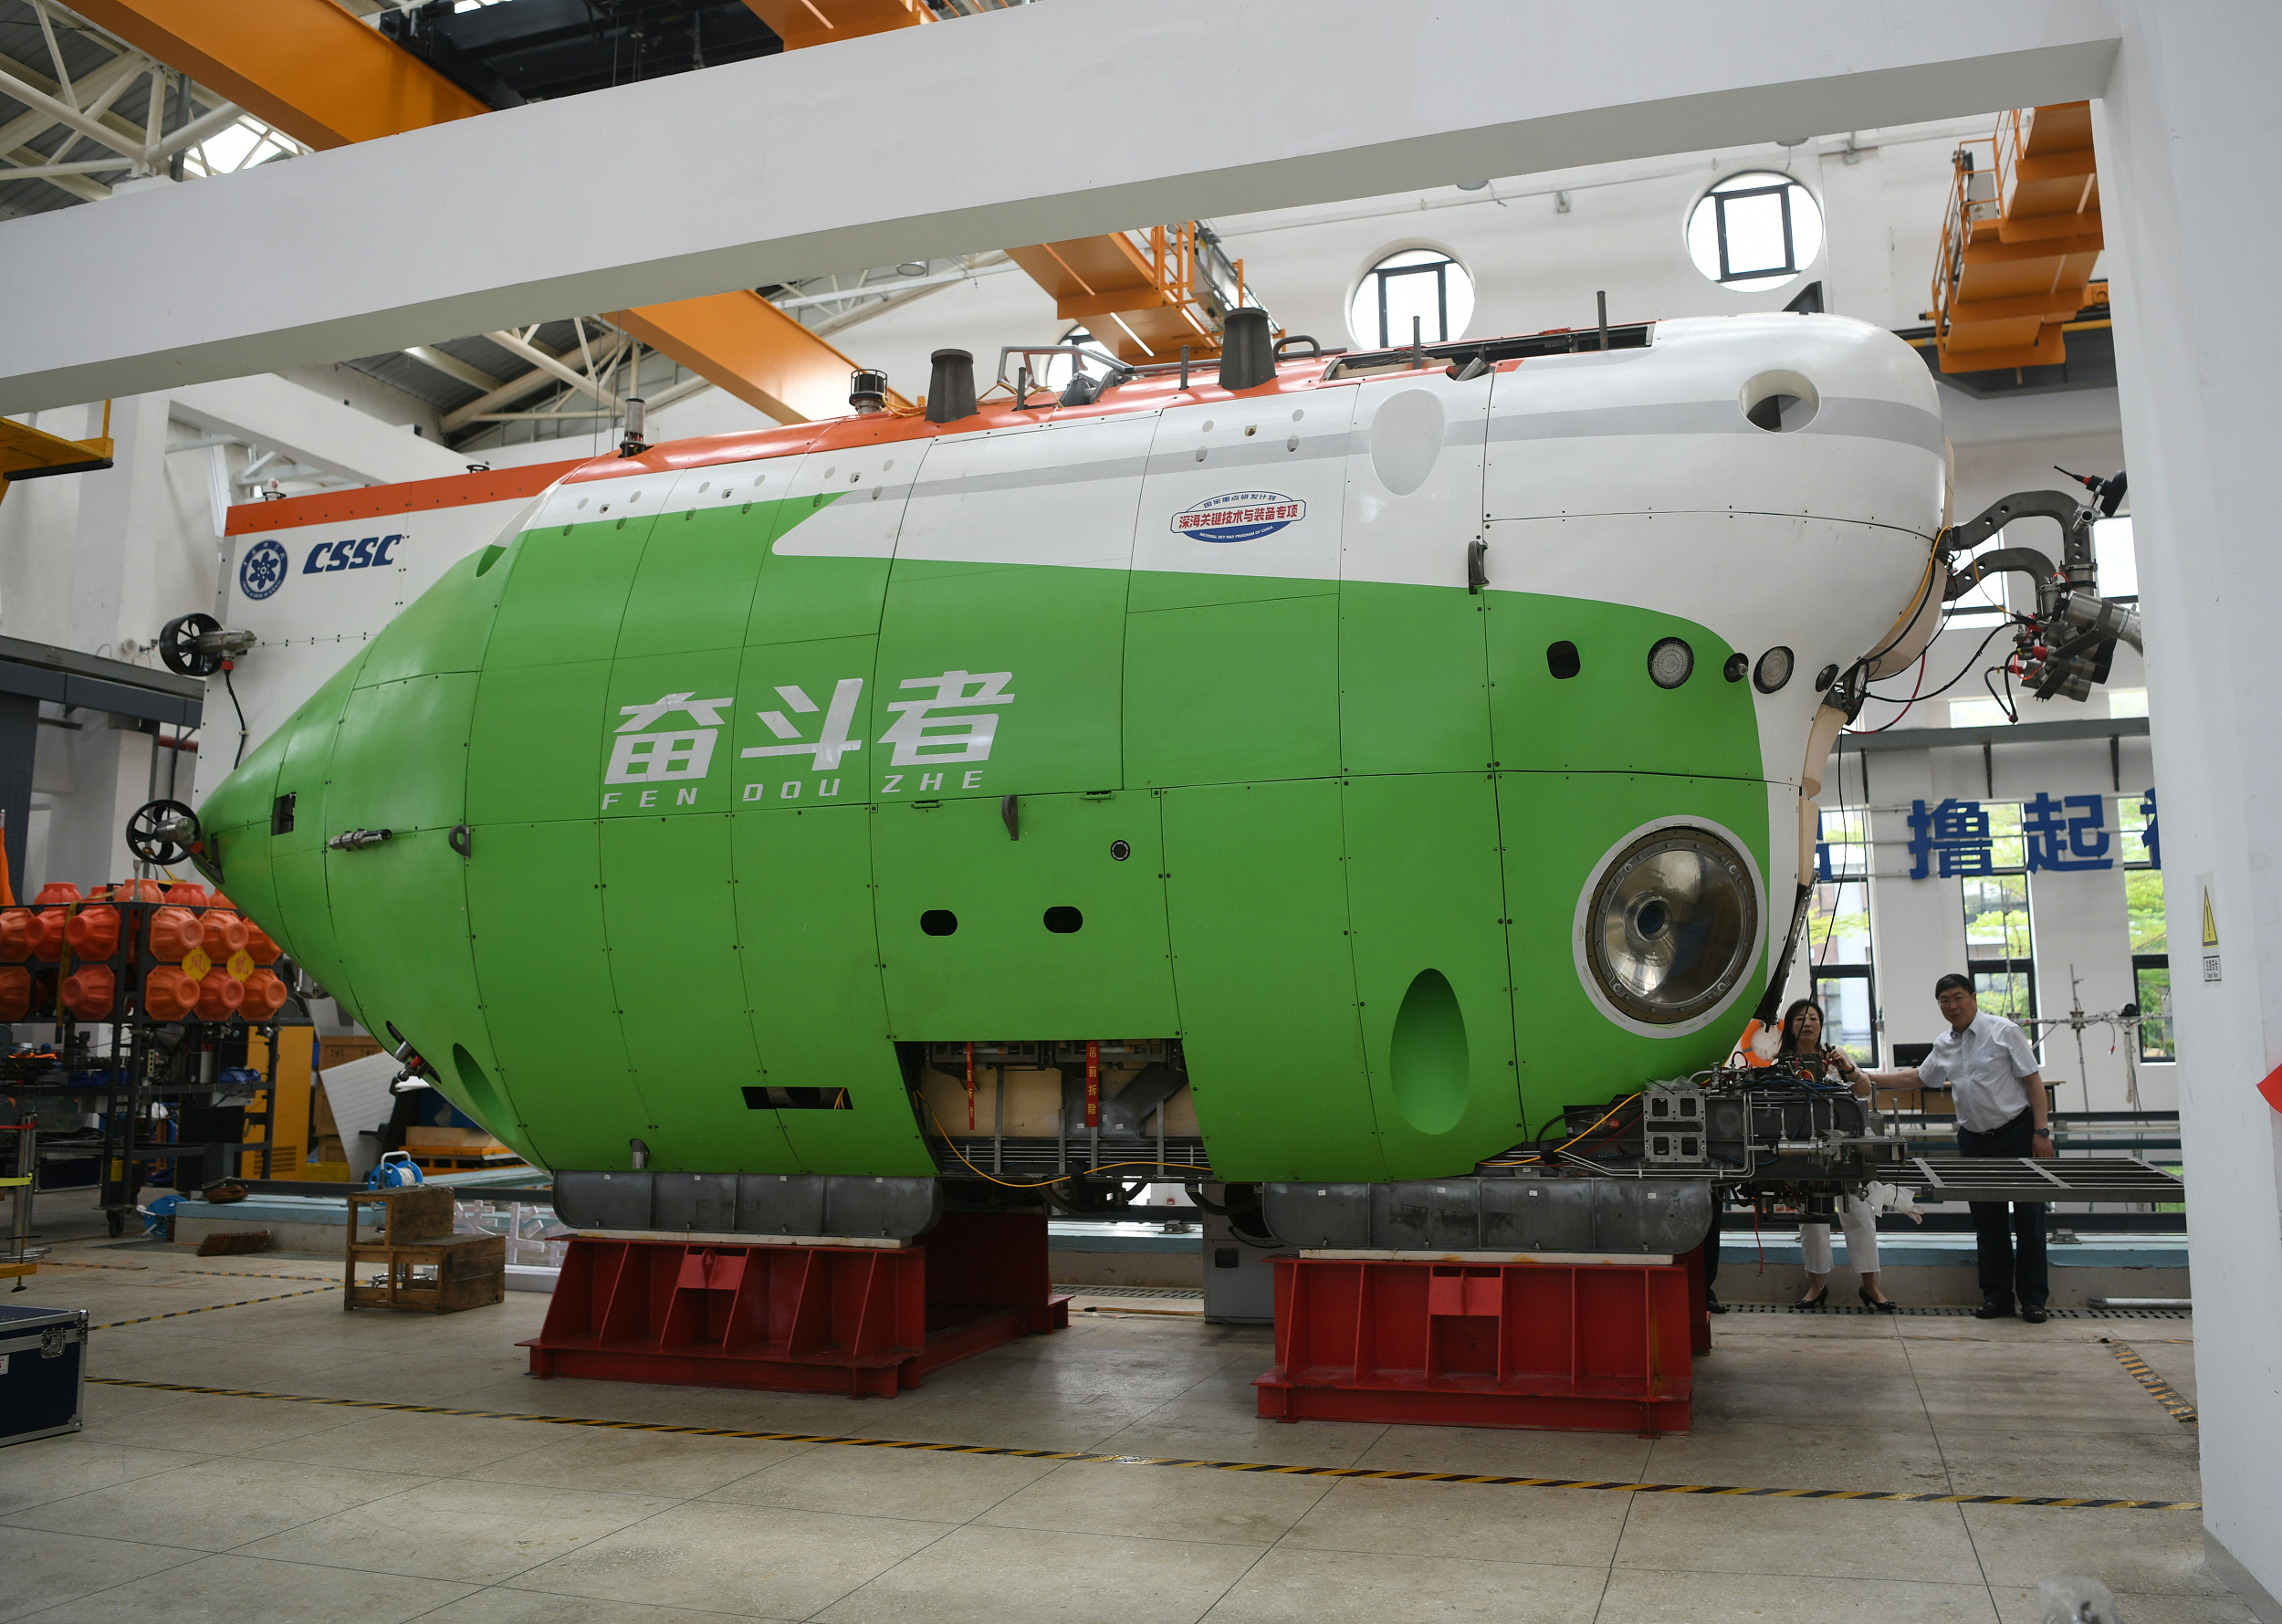 China's latest manned submersible Fendouzhe delivered